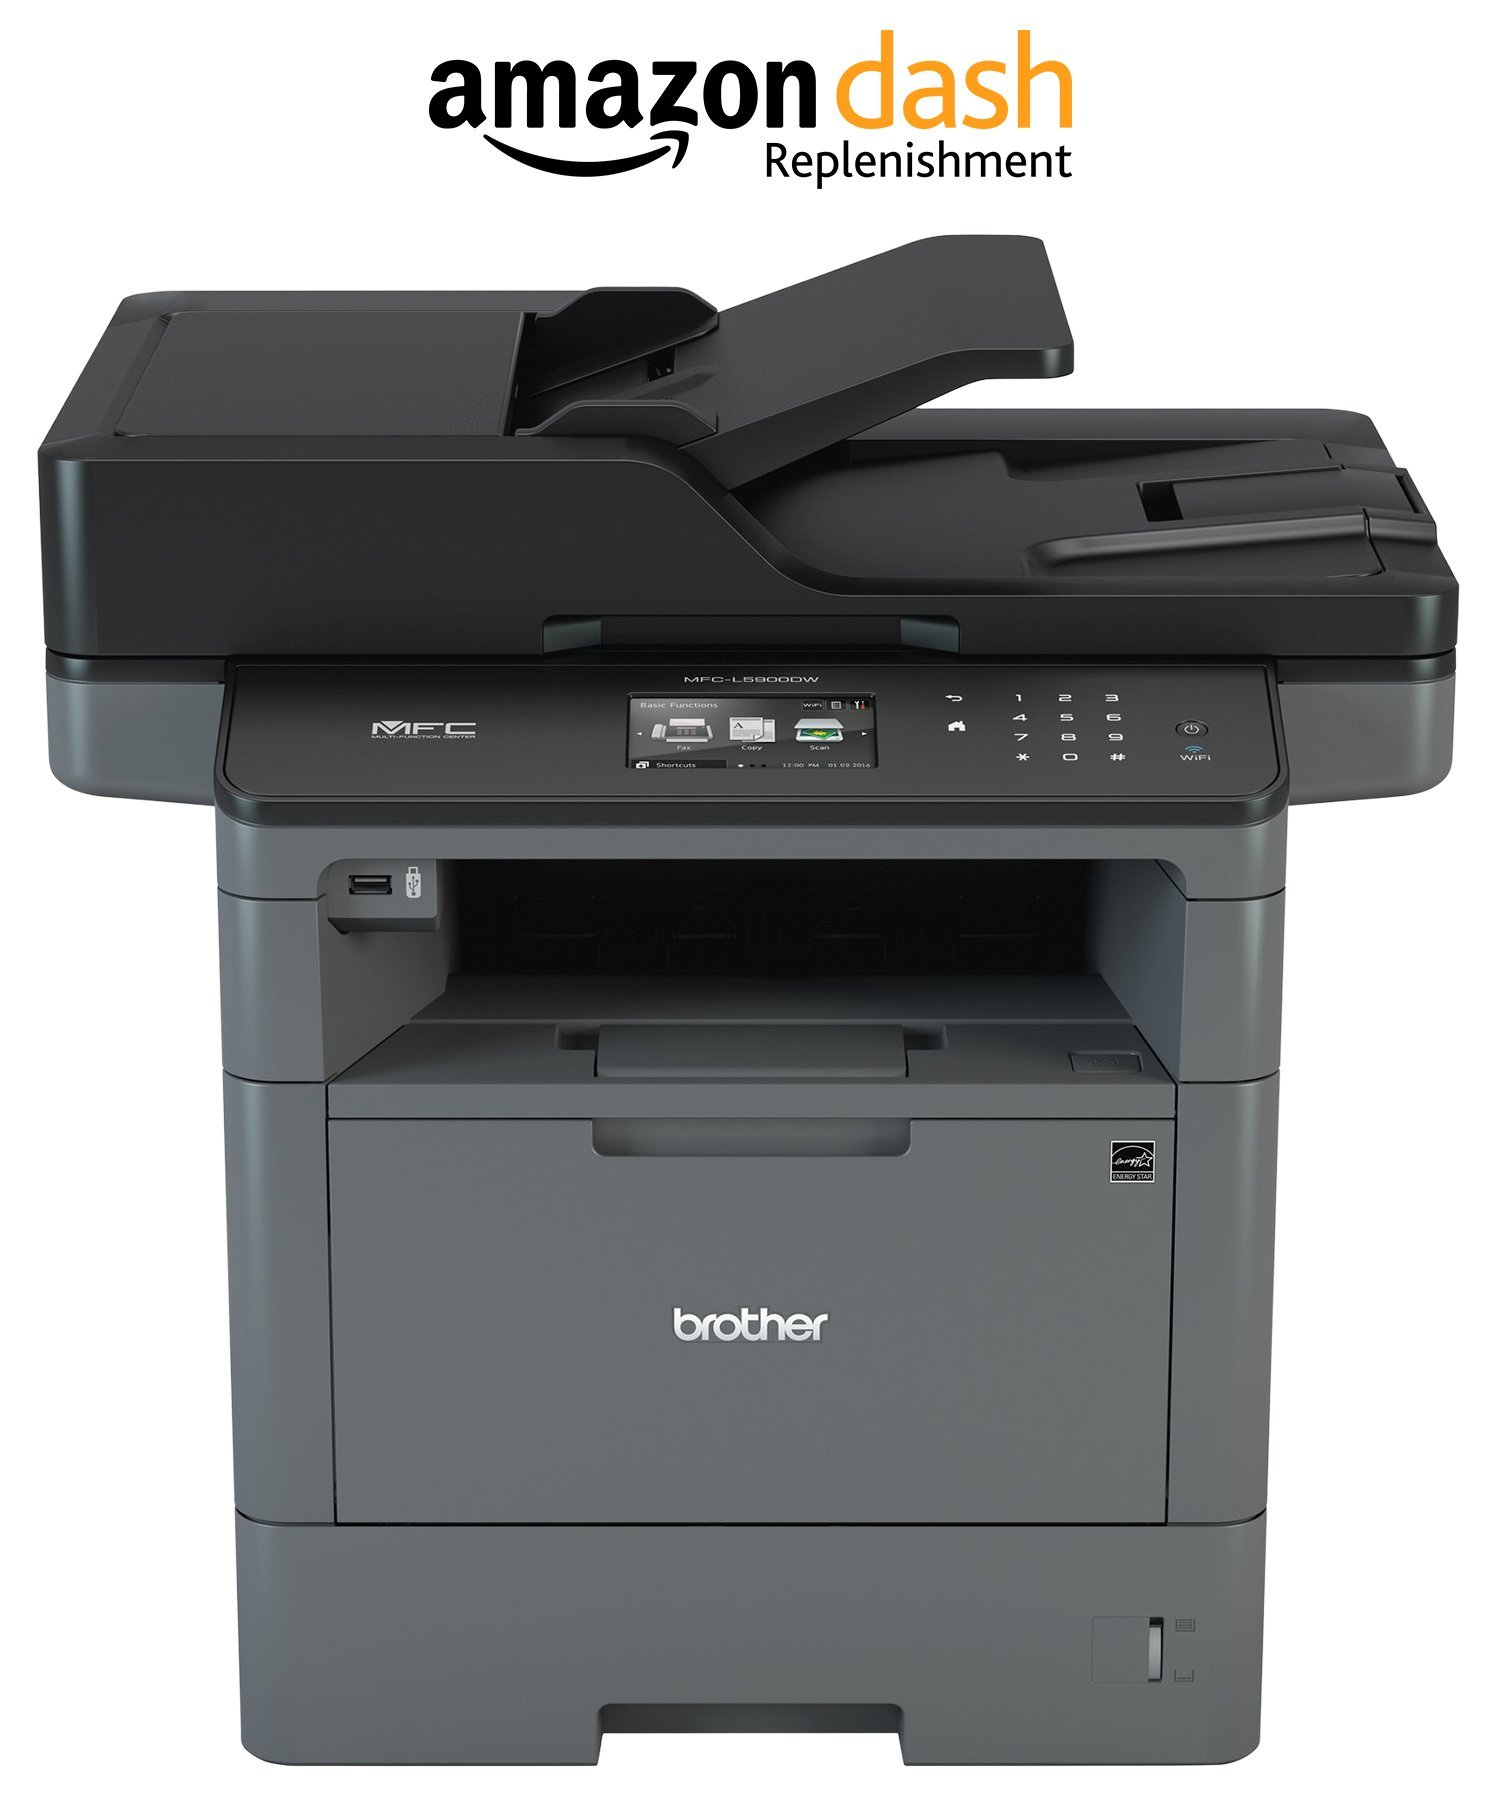 Brother MFCL5900DW Business Monochrome Laser : All-in-One with Advanced Duplex and Wireless Networking, Amazon Dash Replenishment Enabled